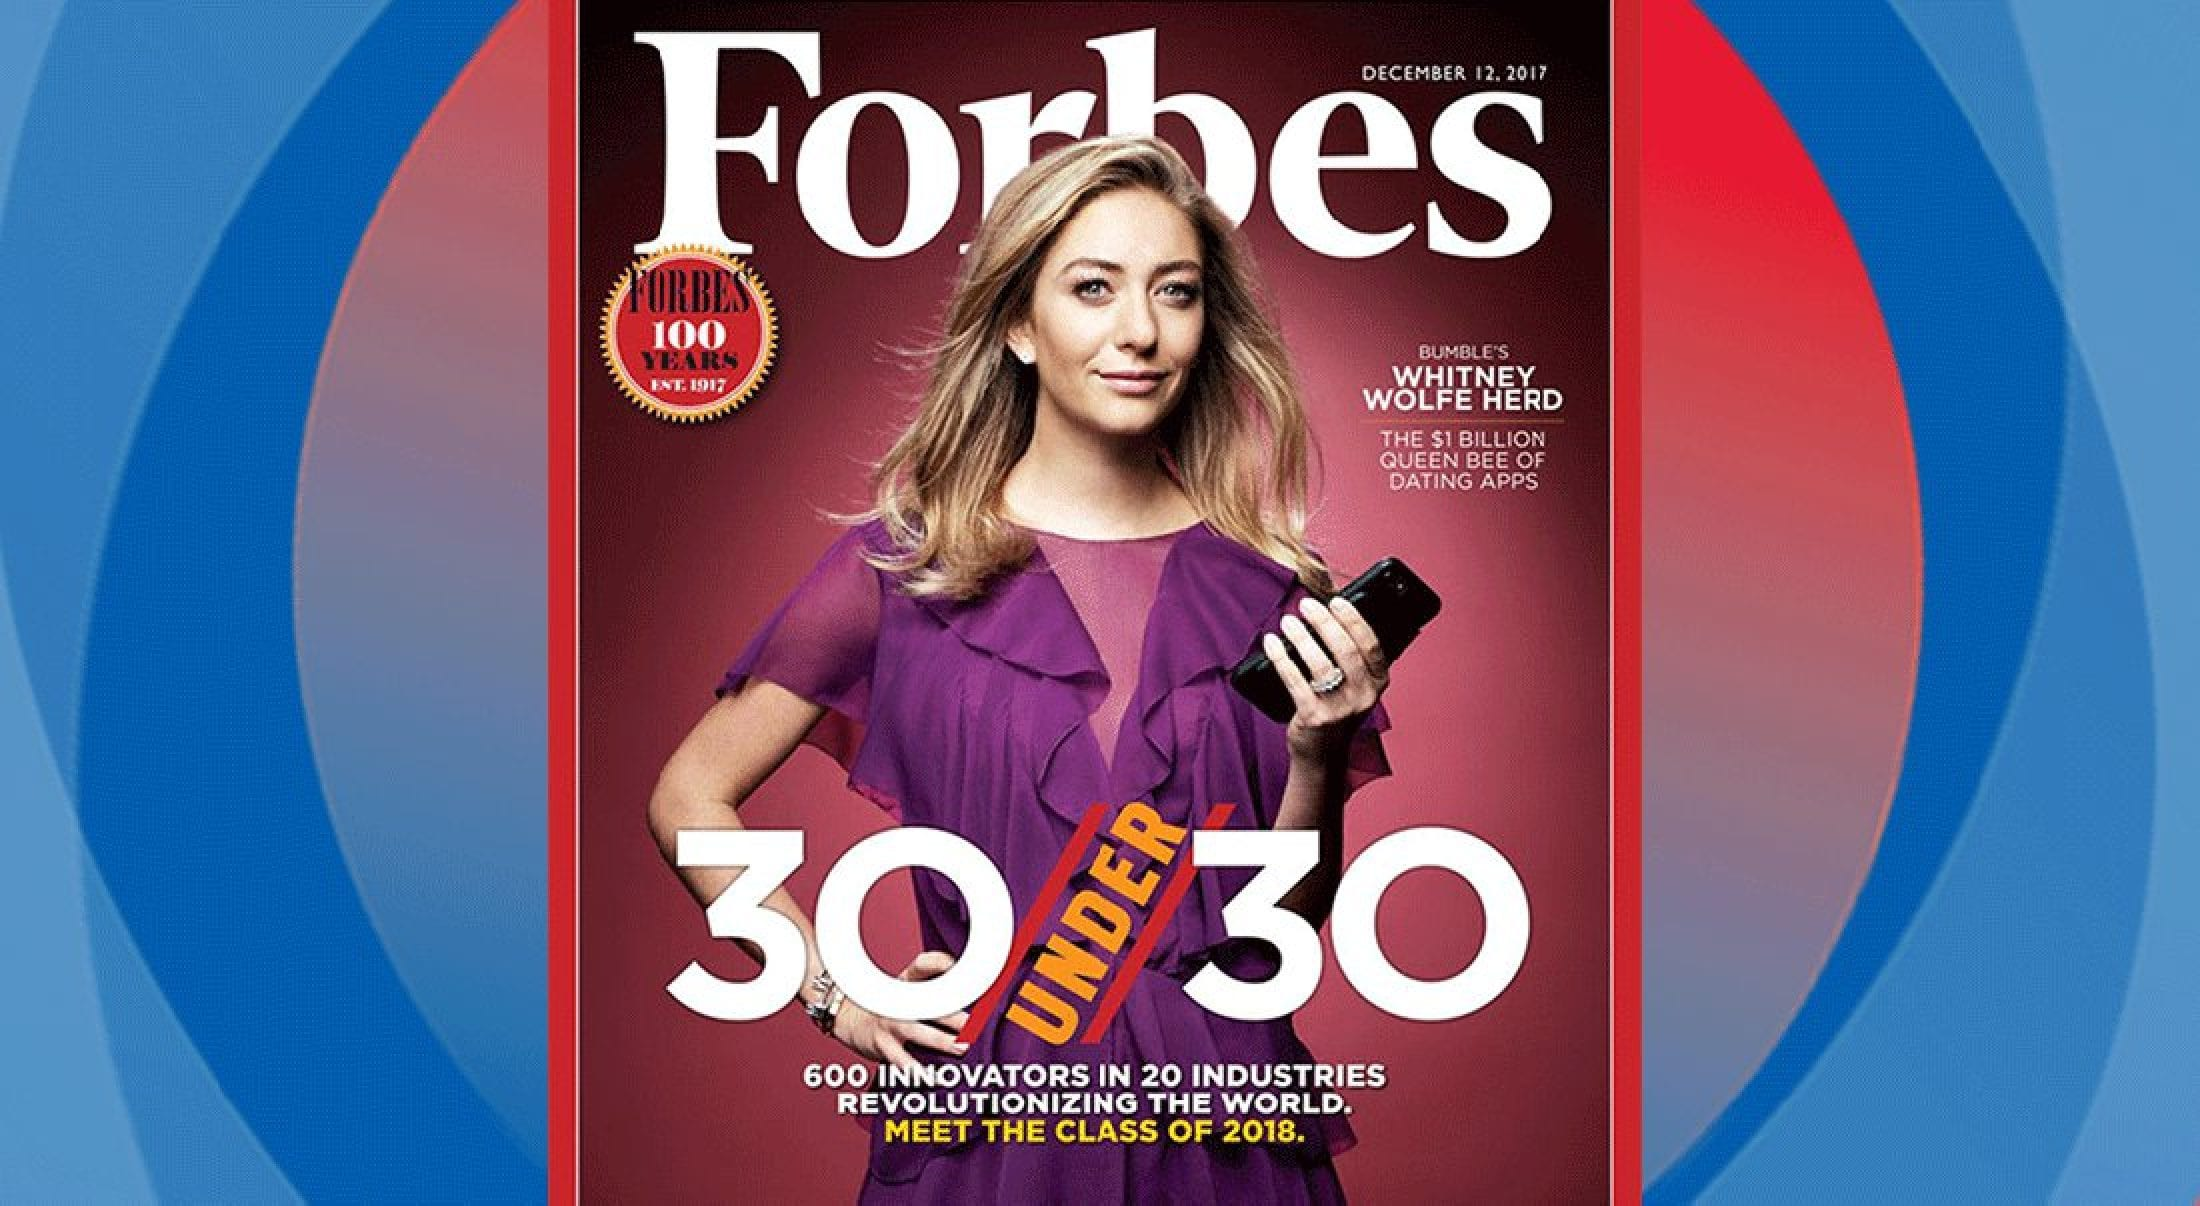 That's SMU alumna Whitney Wolfe Herd on the cover of the Forbes 30 Under 30 issue.